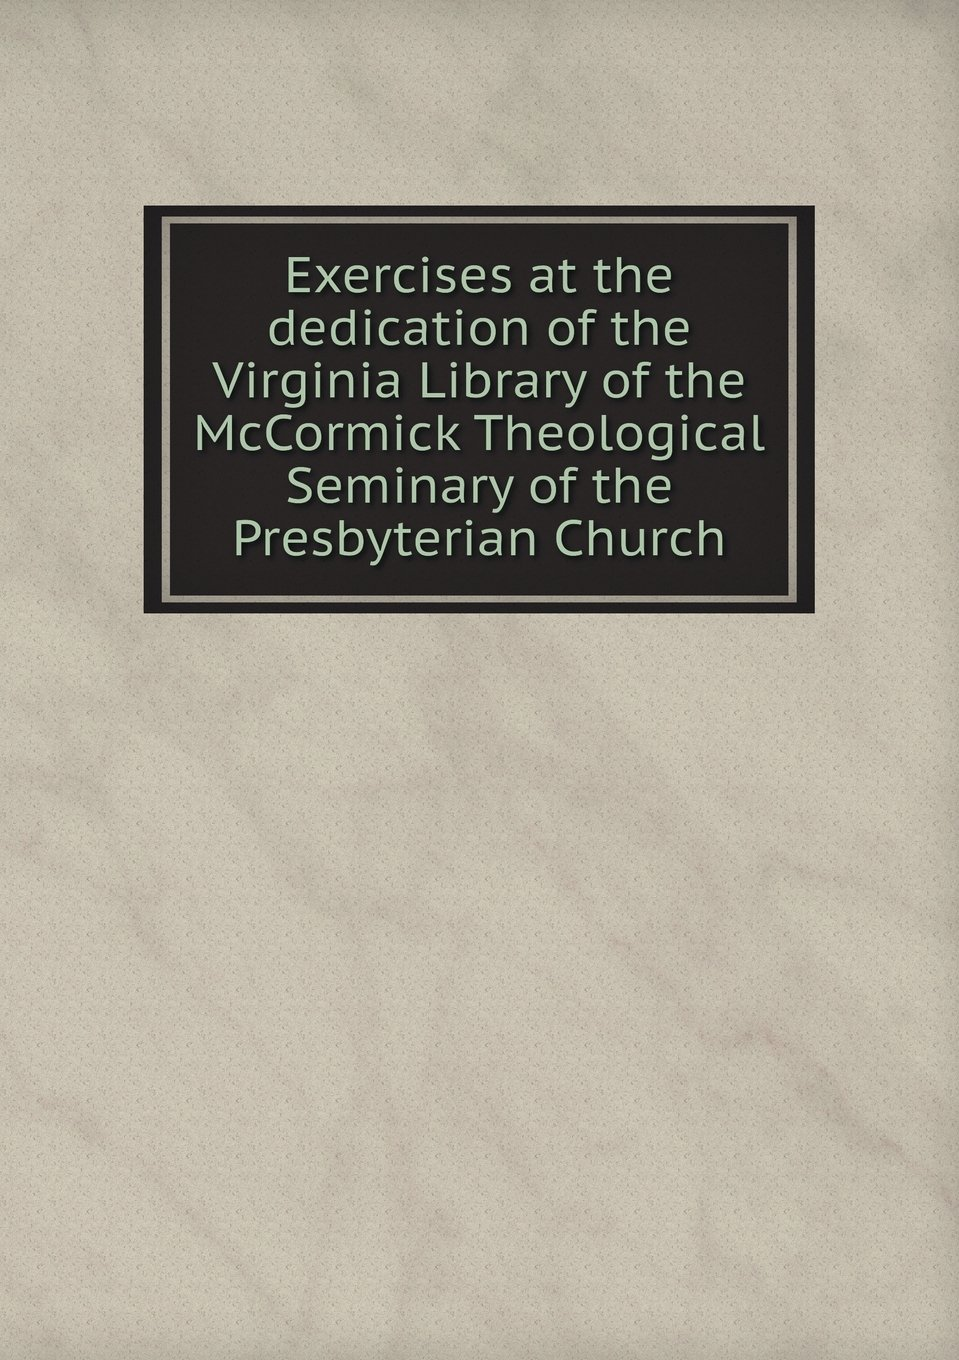 Exercises at the dedication of the Virginia Library of the McCormick Theological Seminary of the Presbyterian Church ebook